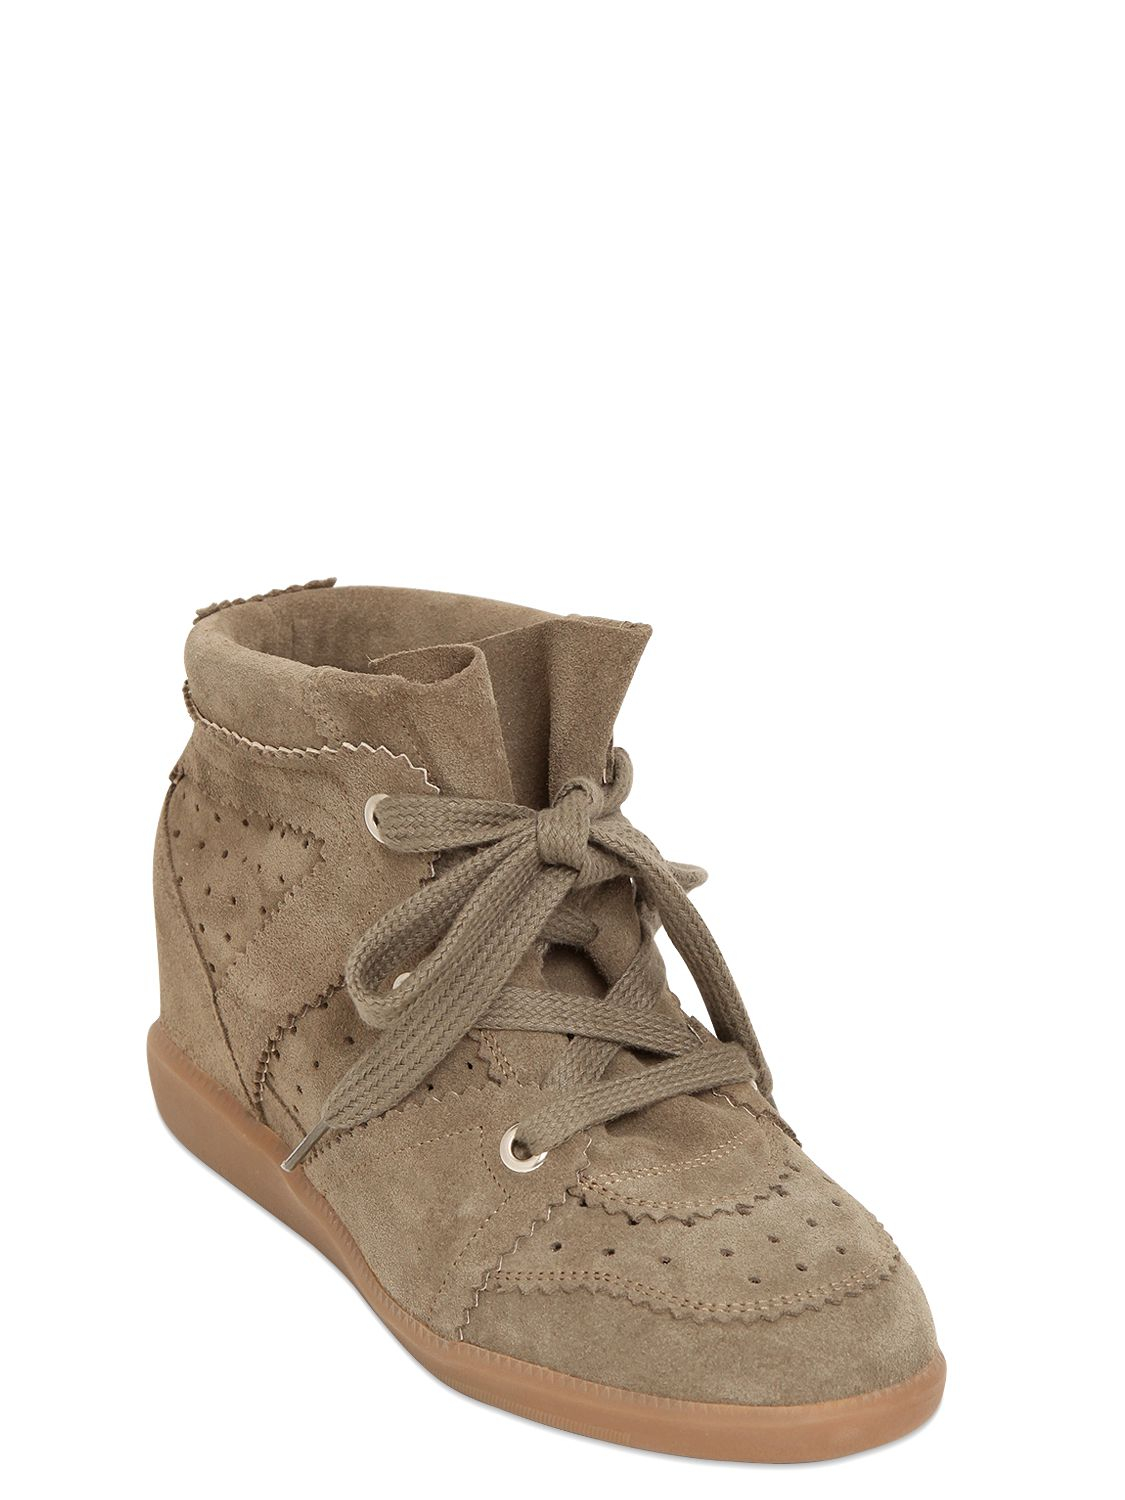 Isabel Marant Etoile 80mm Bobby Suede Wedge Sneakers In